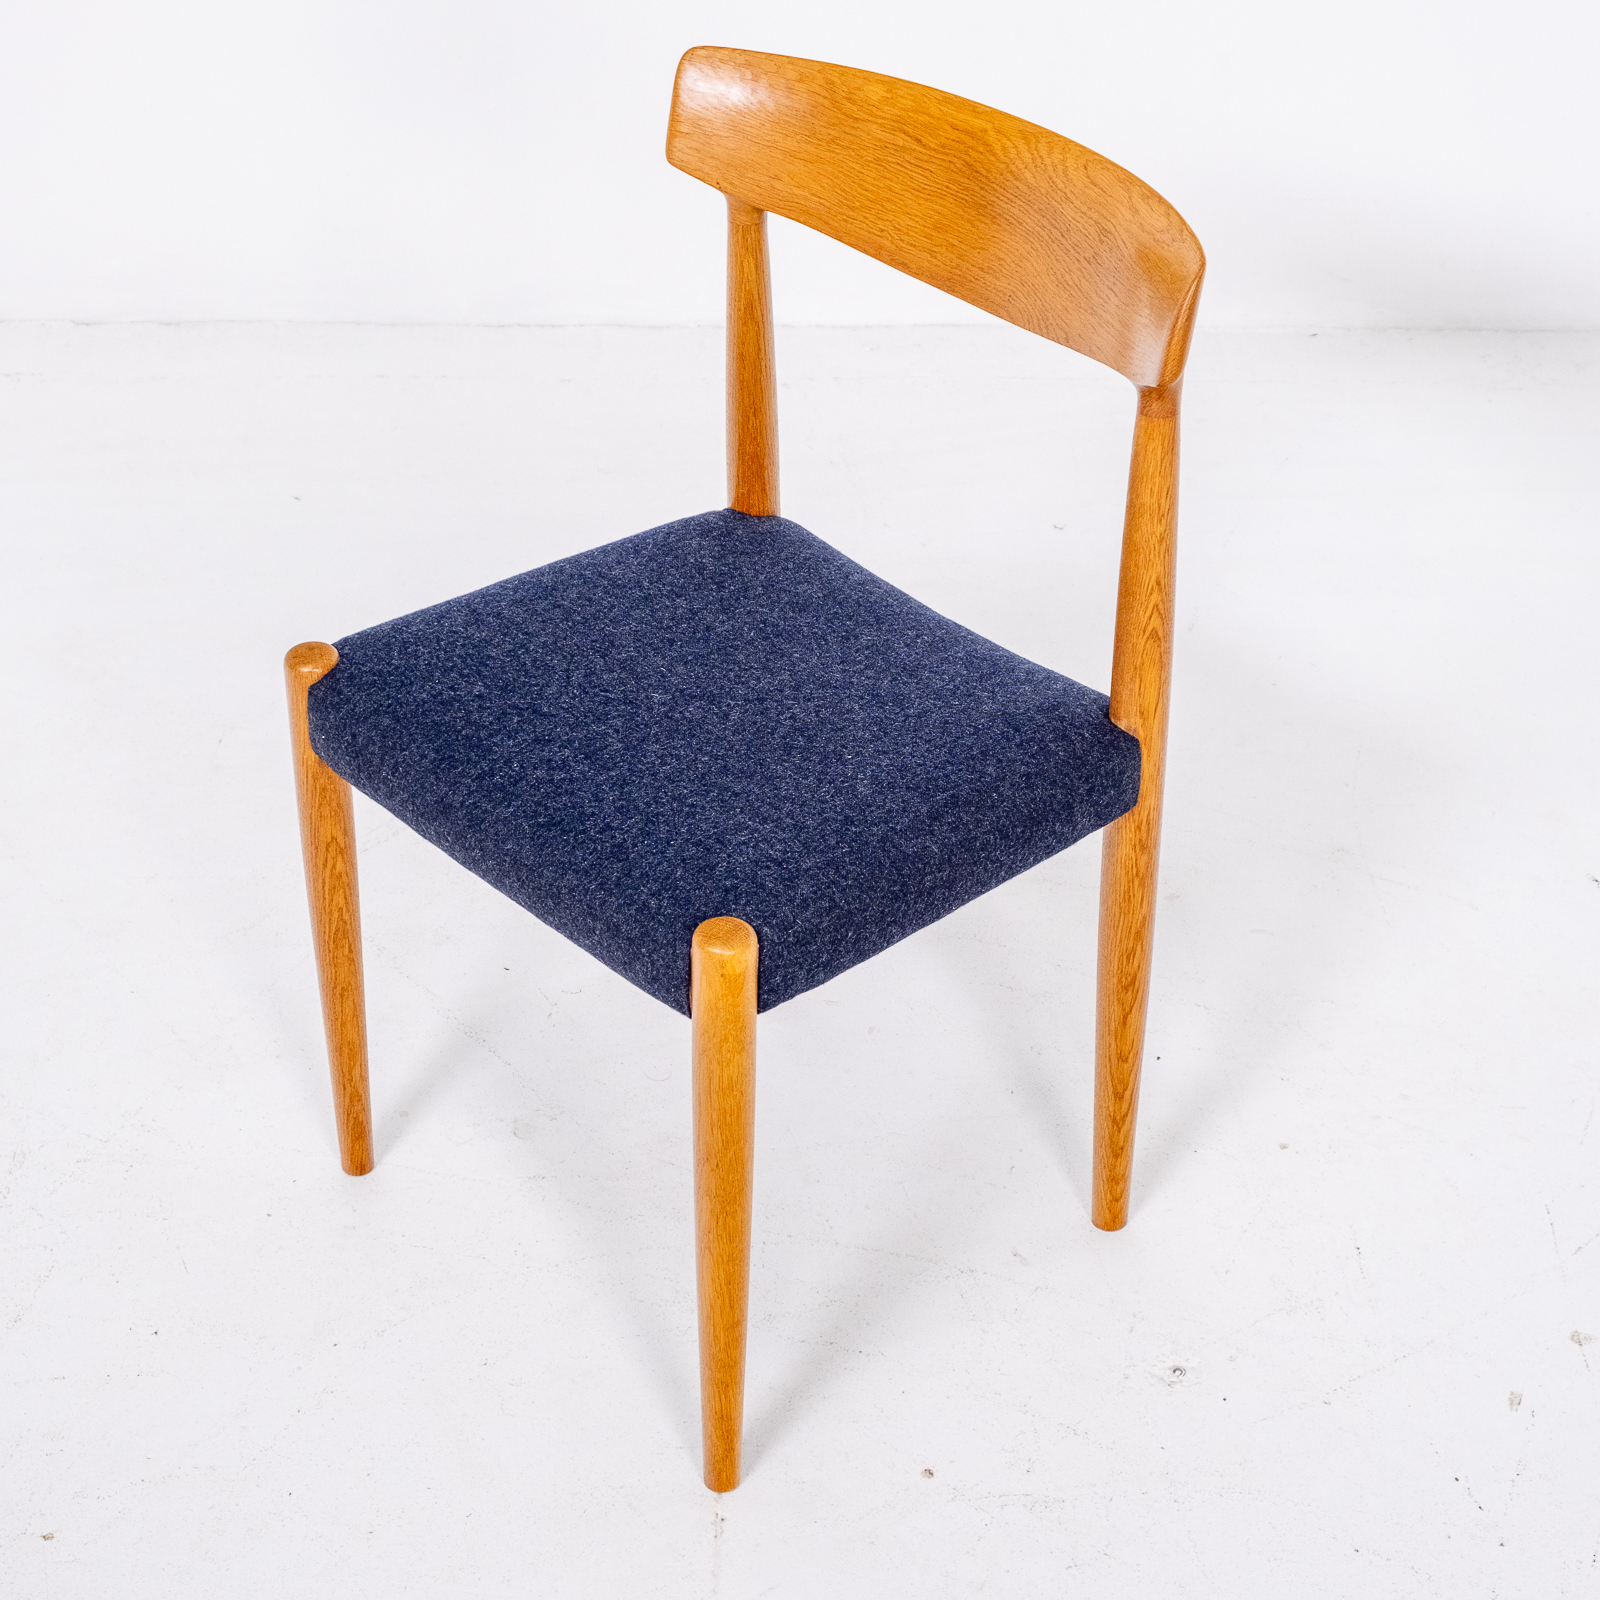 Set Of 6 Dining Chairs By Borge Mogensen For Fdb Mobler In Oak, 1960s, Denmark 00002